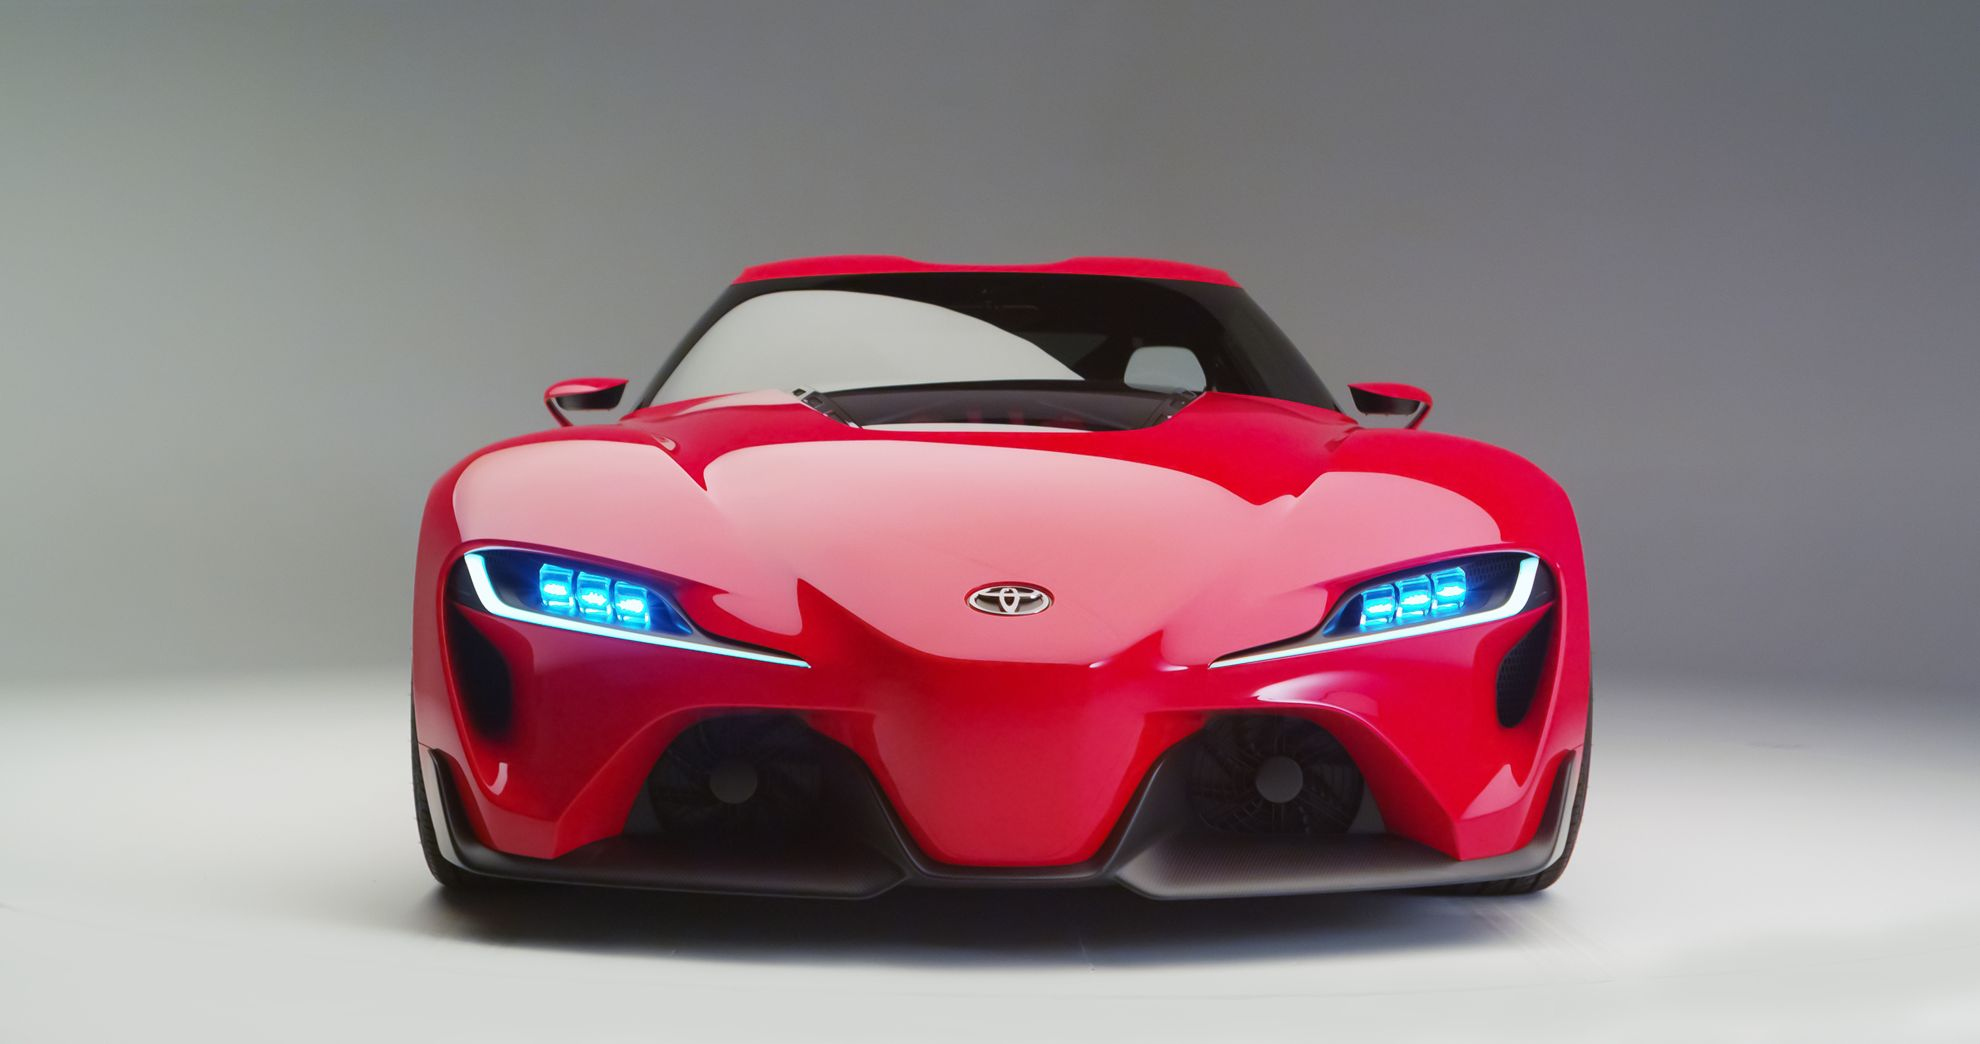 Toyota Ft 1 Concept Price >> TOYOTA FT-1 CONCEPT CAR